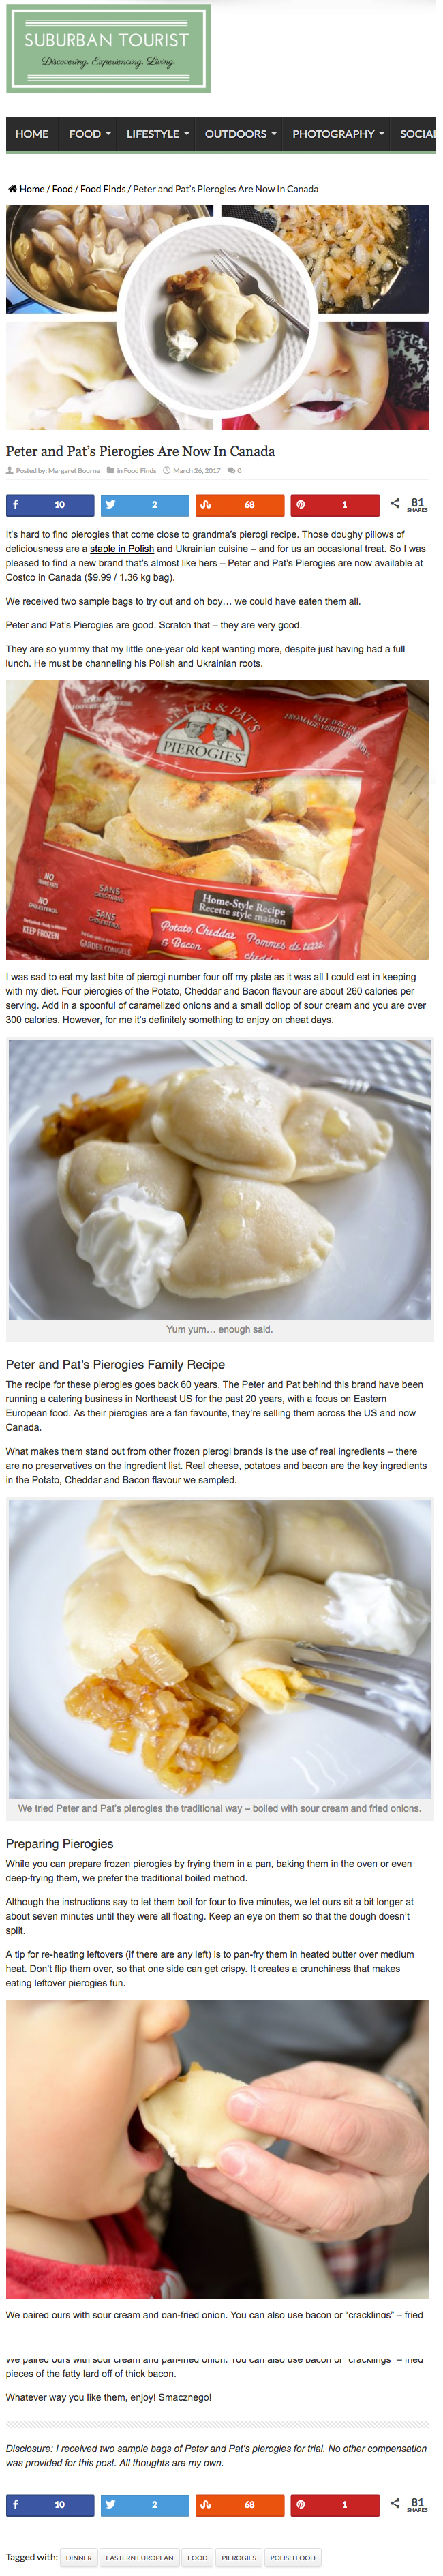 Peter & Pat's Pierogies Featured on Suburban Tourist. www.suburbantourist.ca